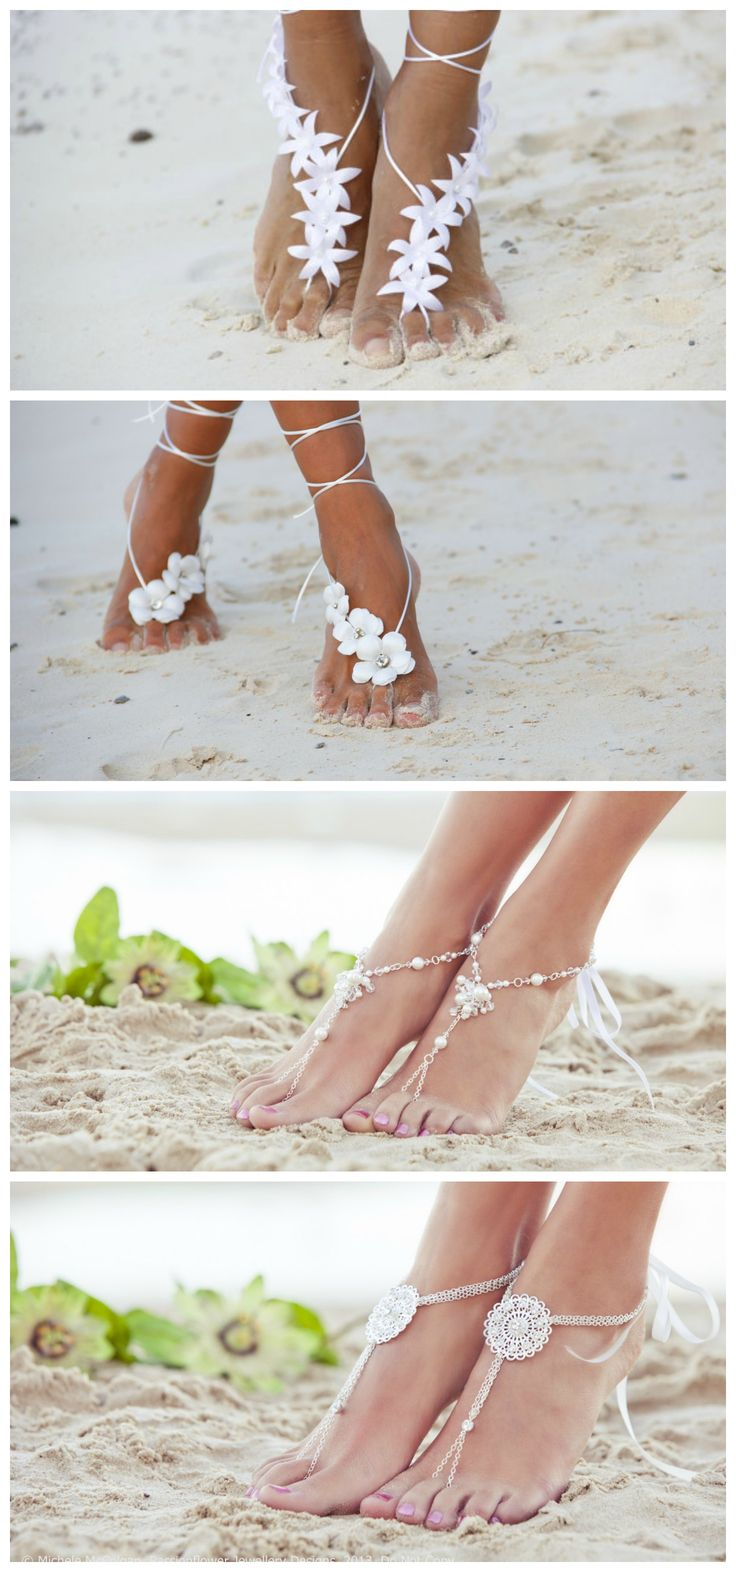 Amazing beach shoes for a beach wedding